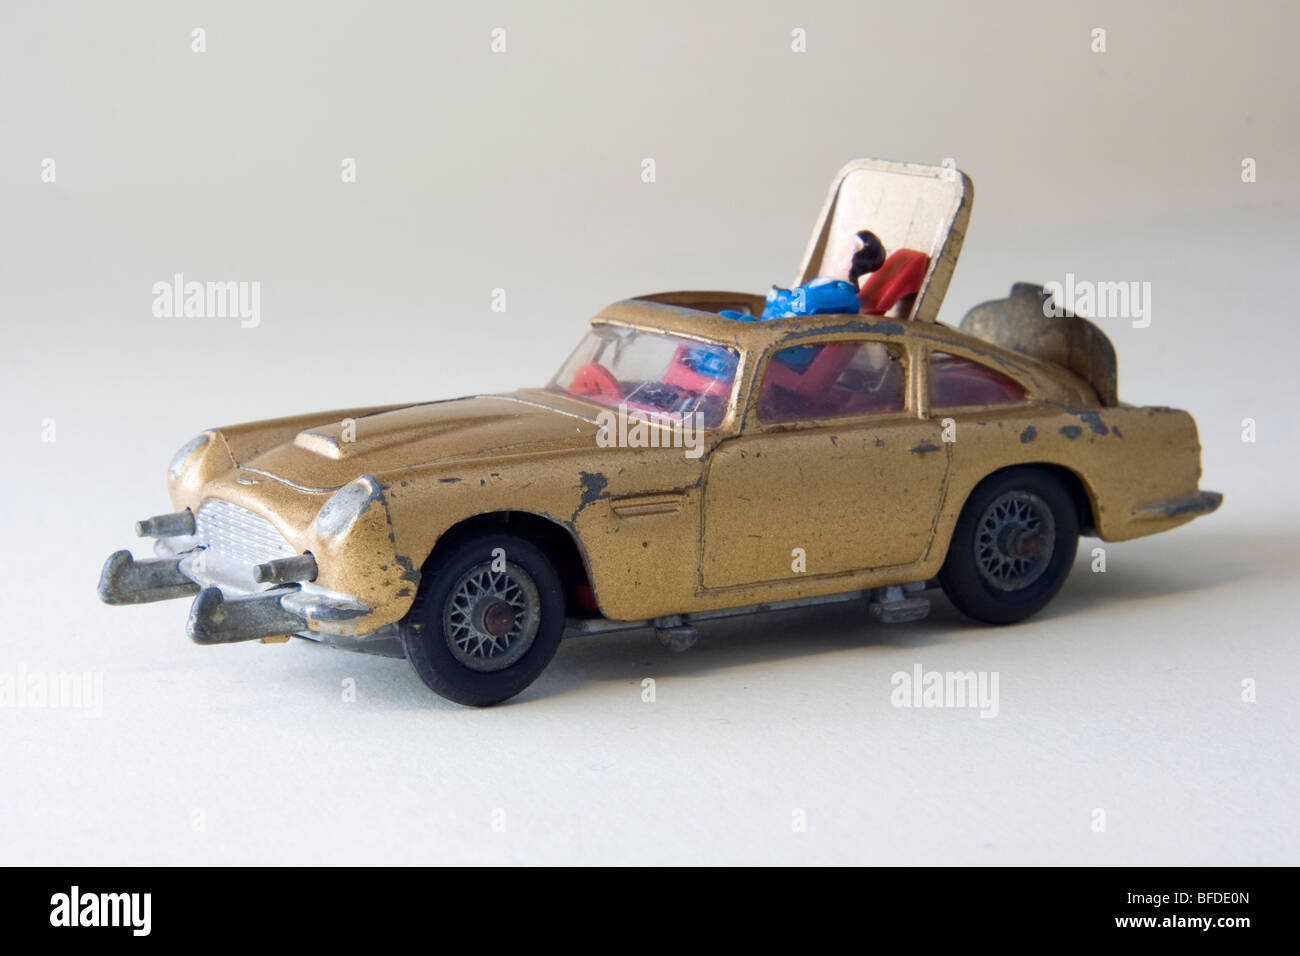 corgi james bond aston martin db5 car stock photo, royalty free